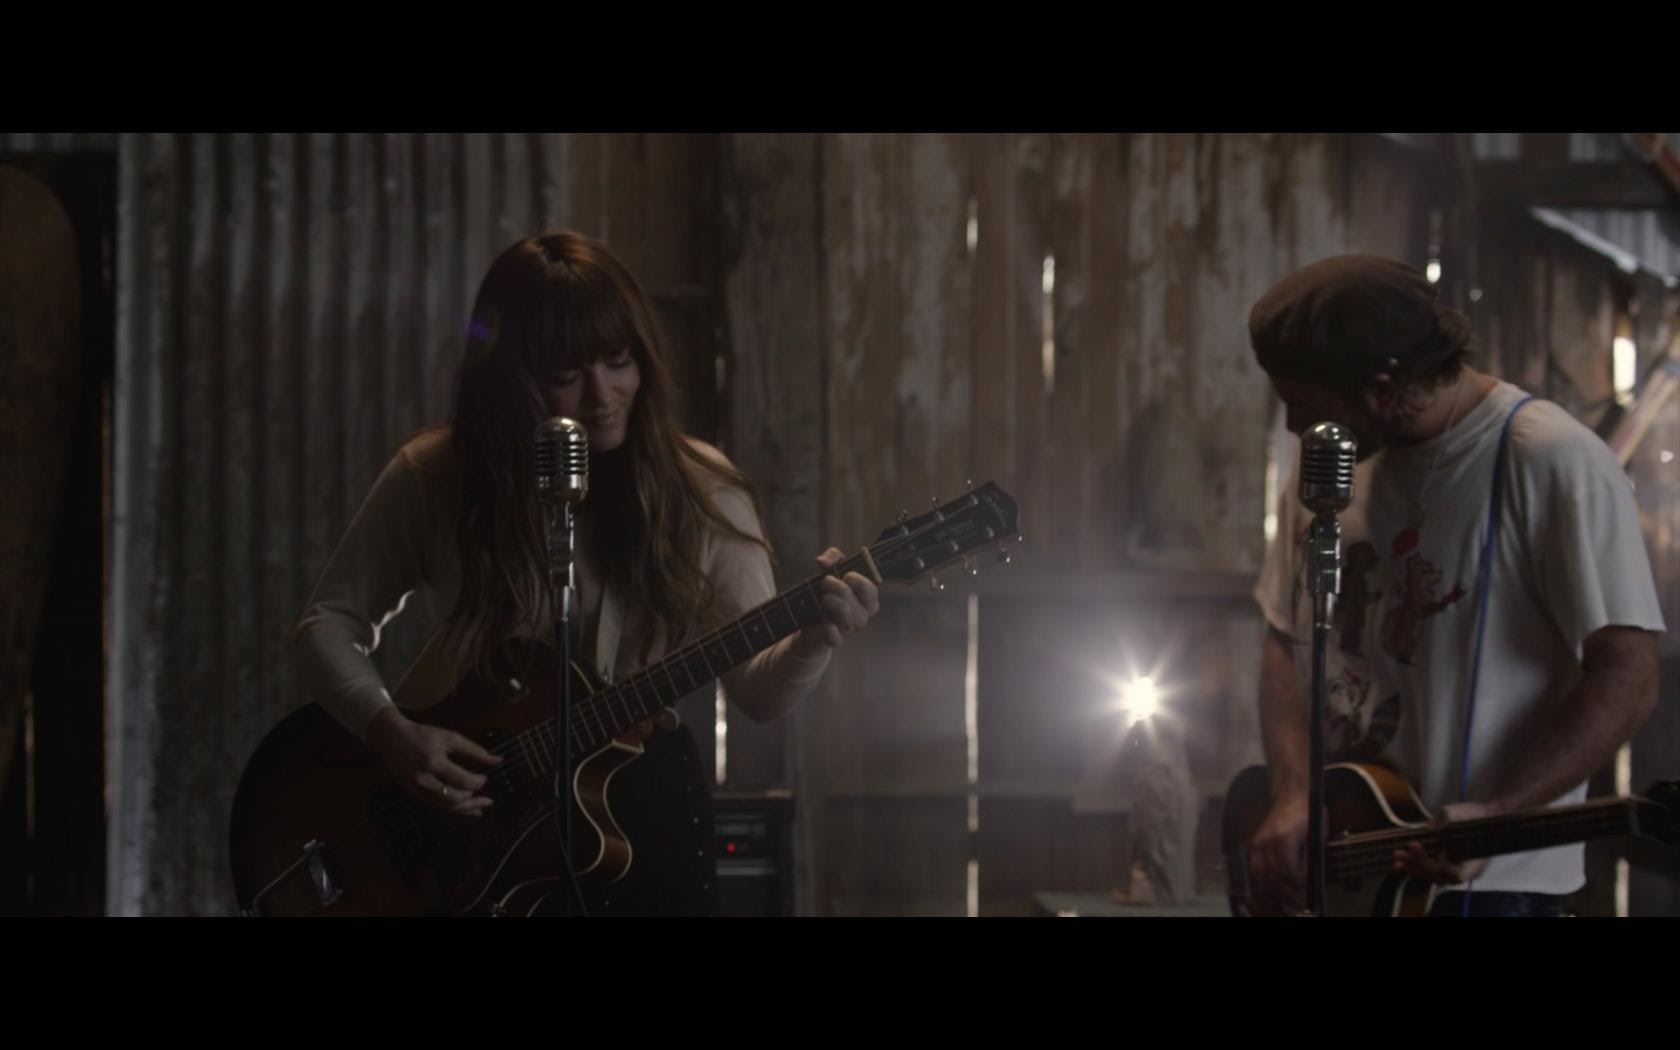 Video Alert Angus Julia Stone Unveil Snow Video The